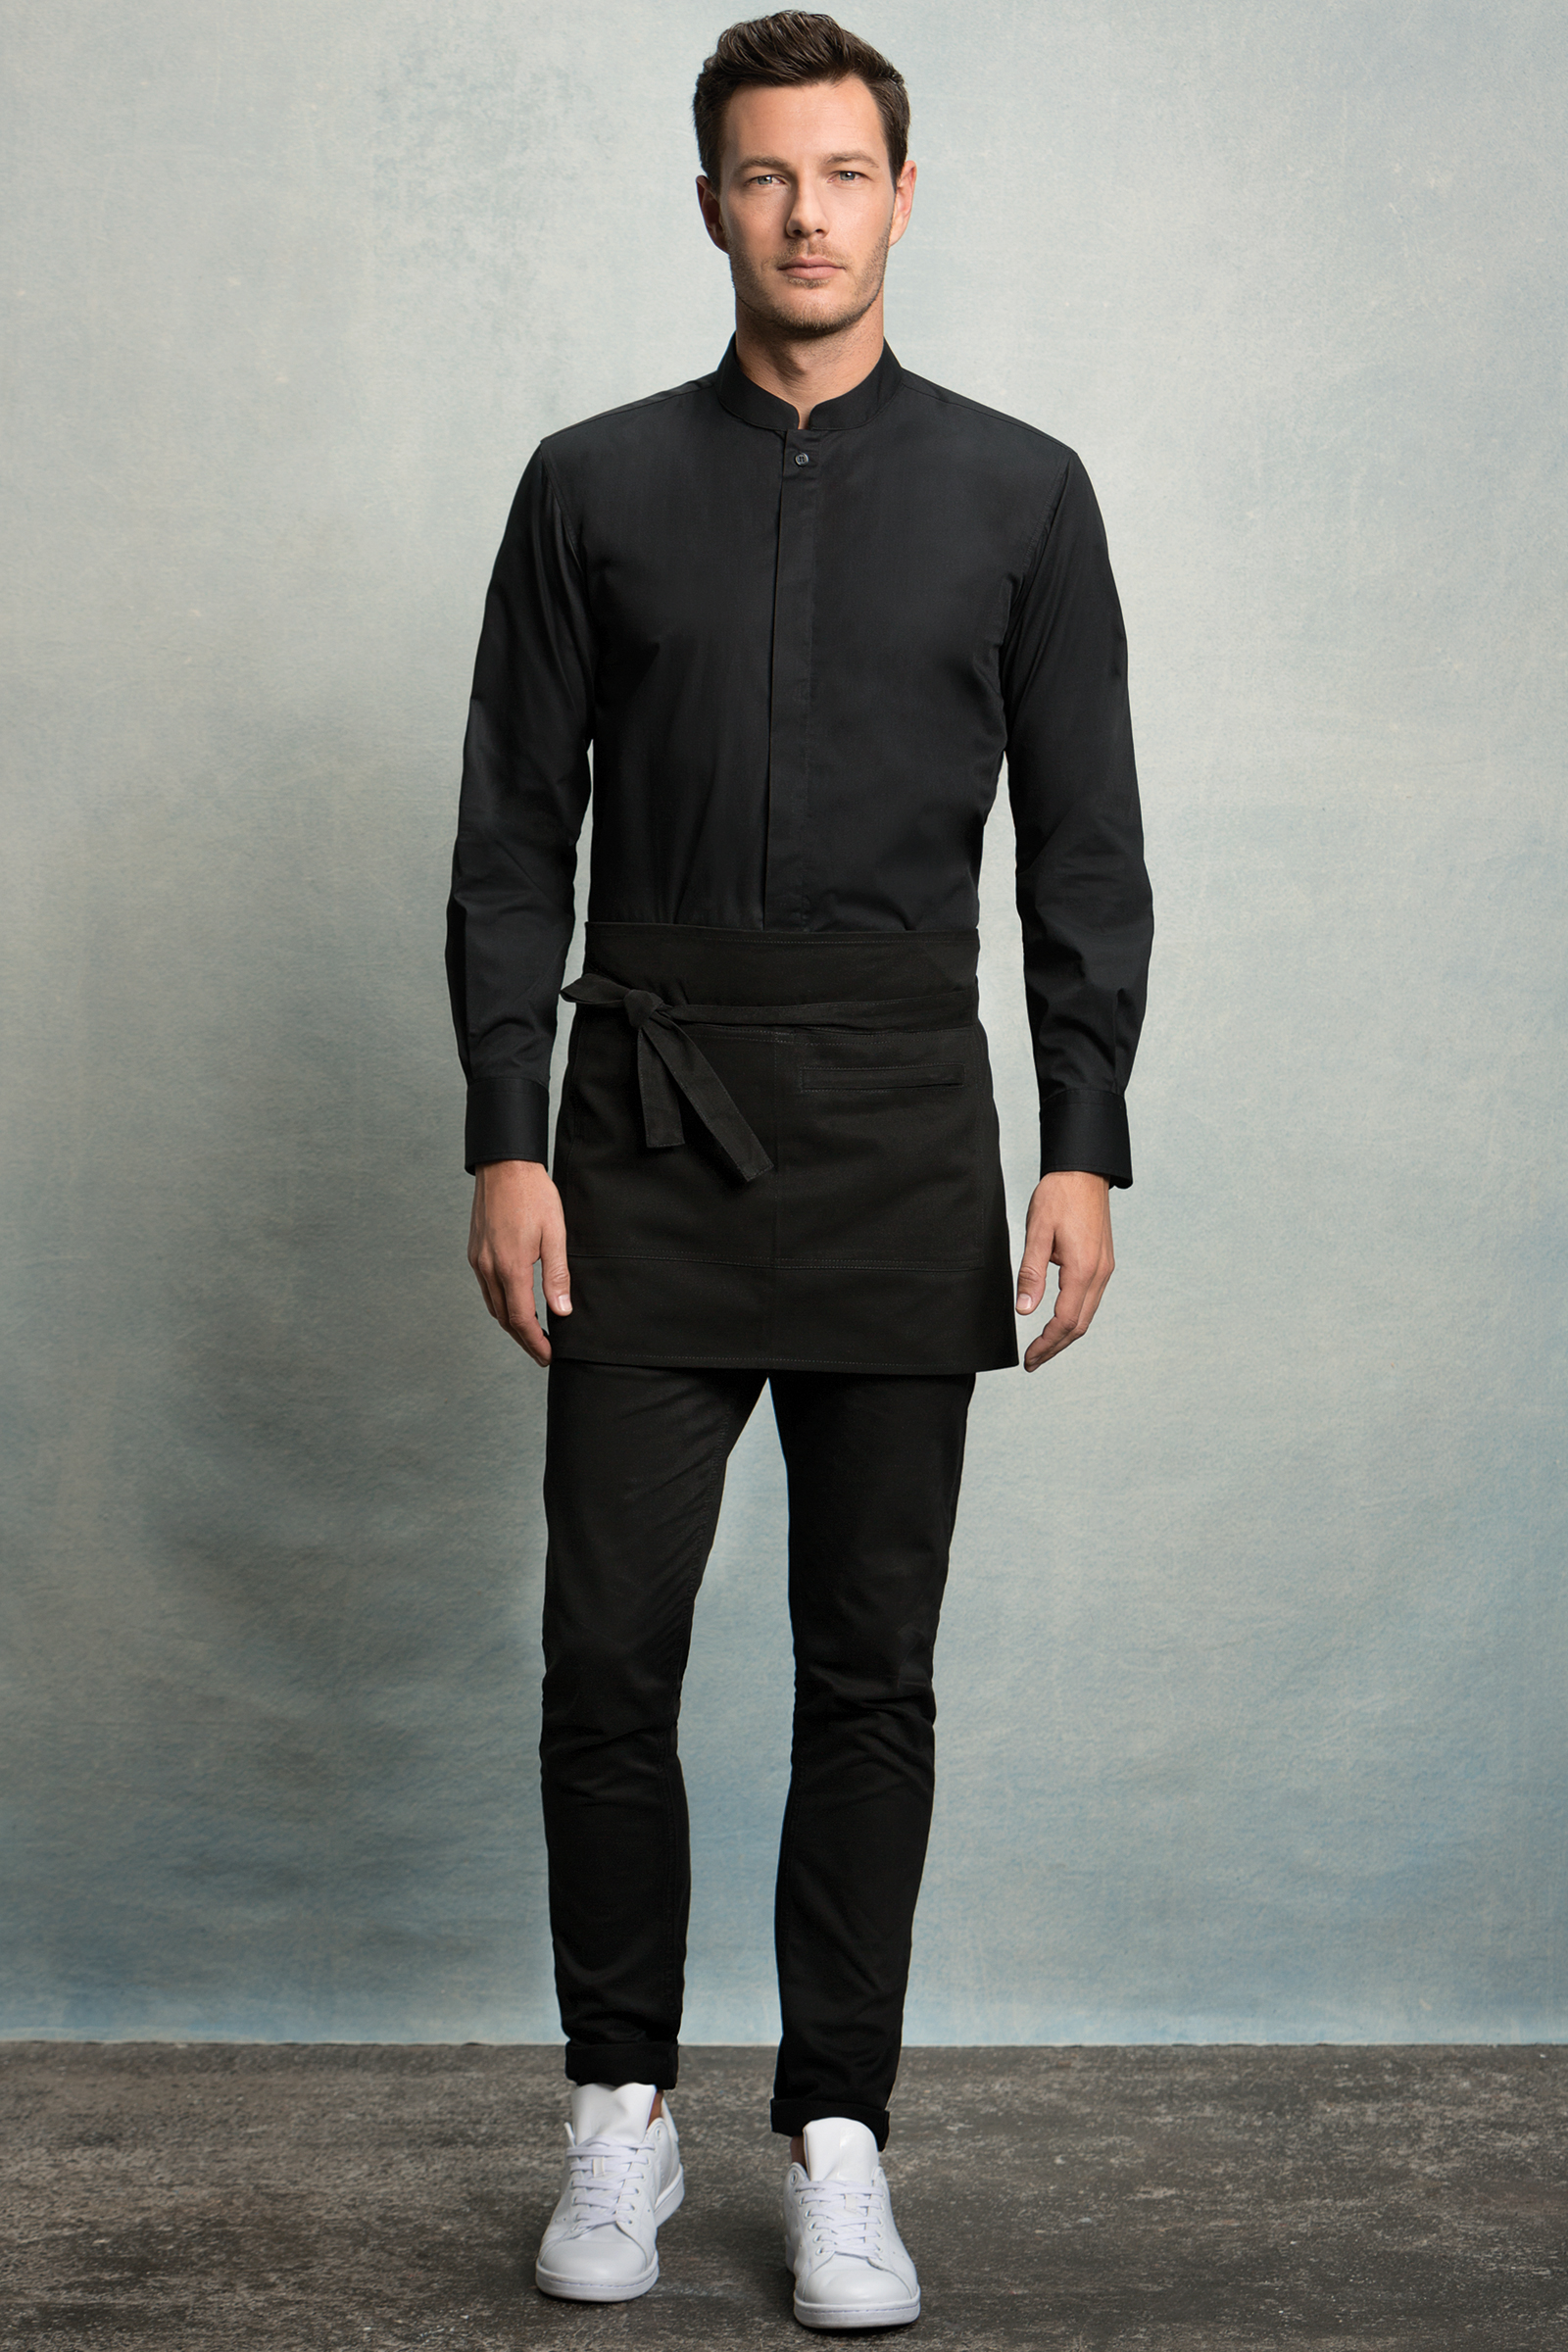 Long Sleeve Collar Shirts Mens